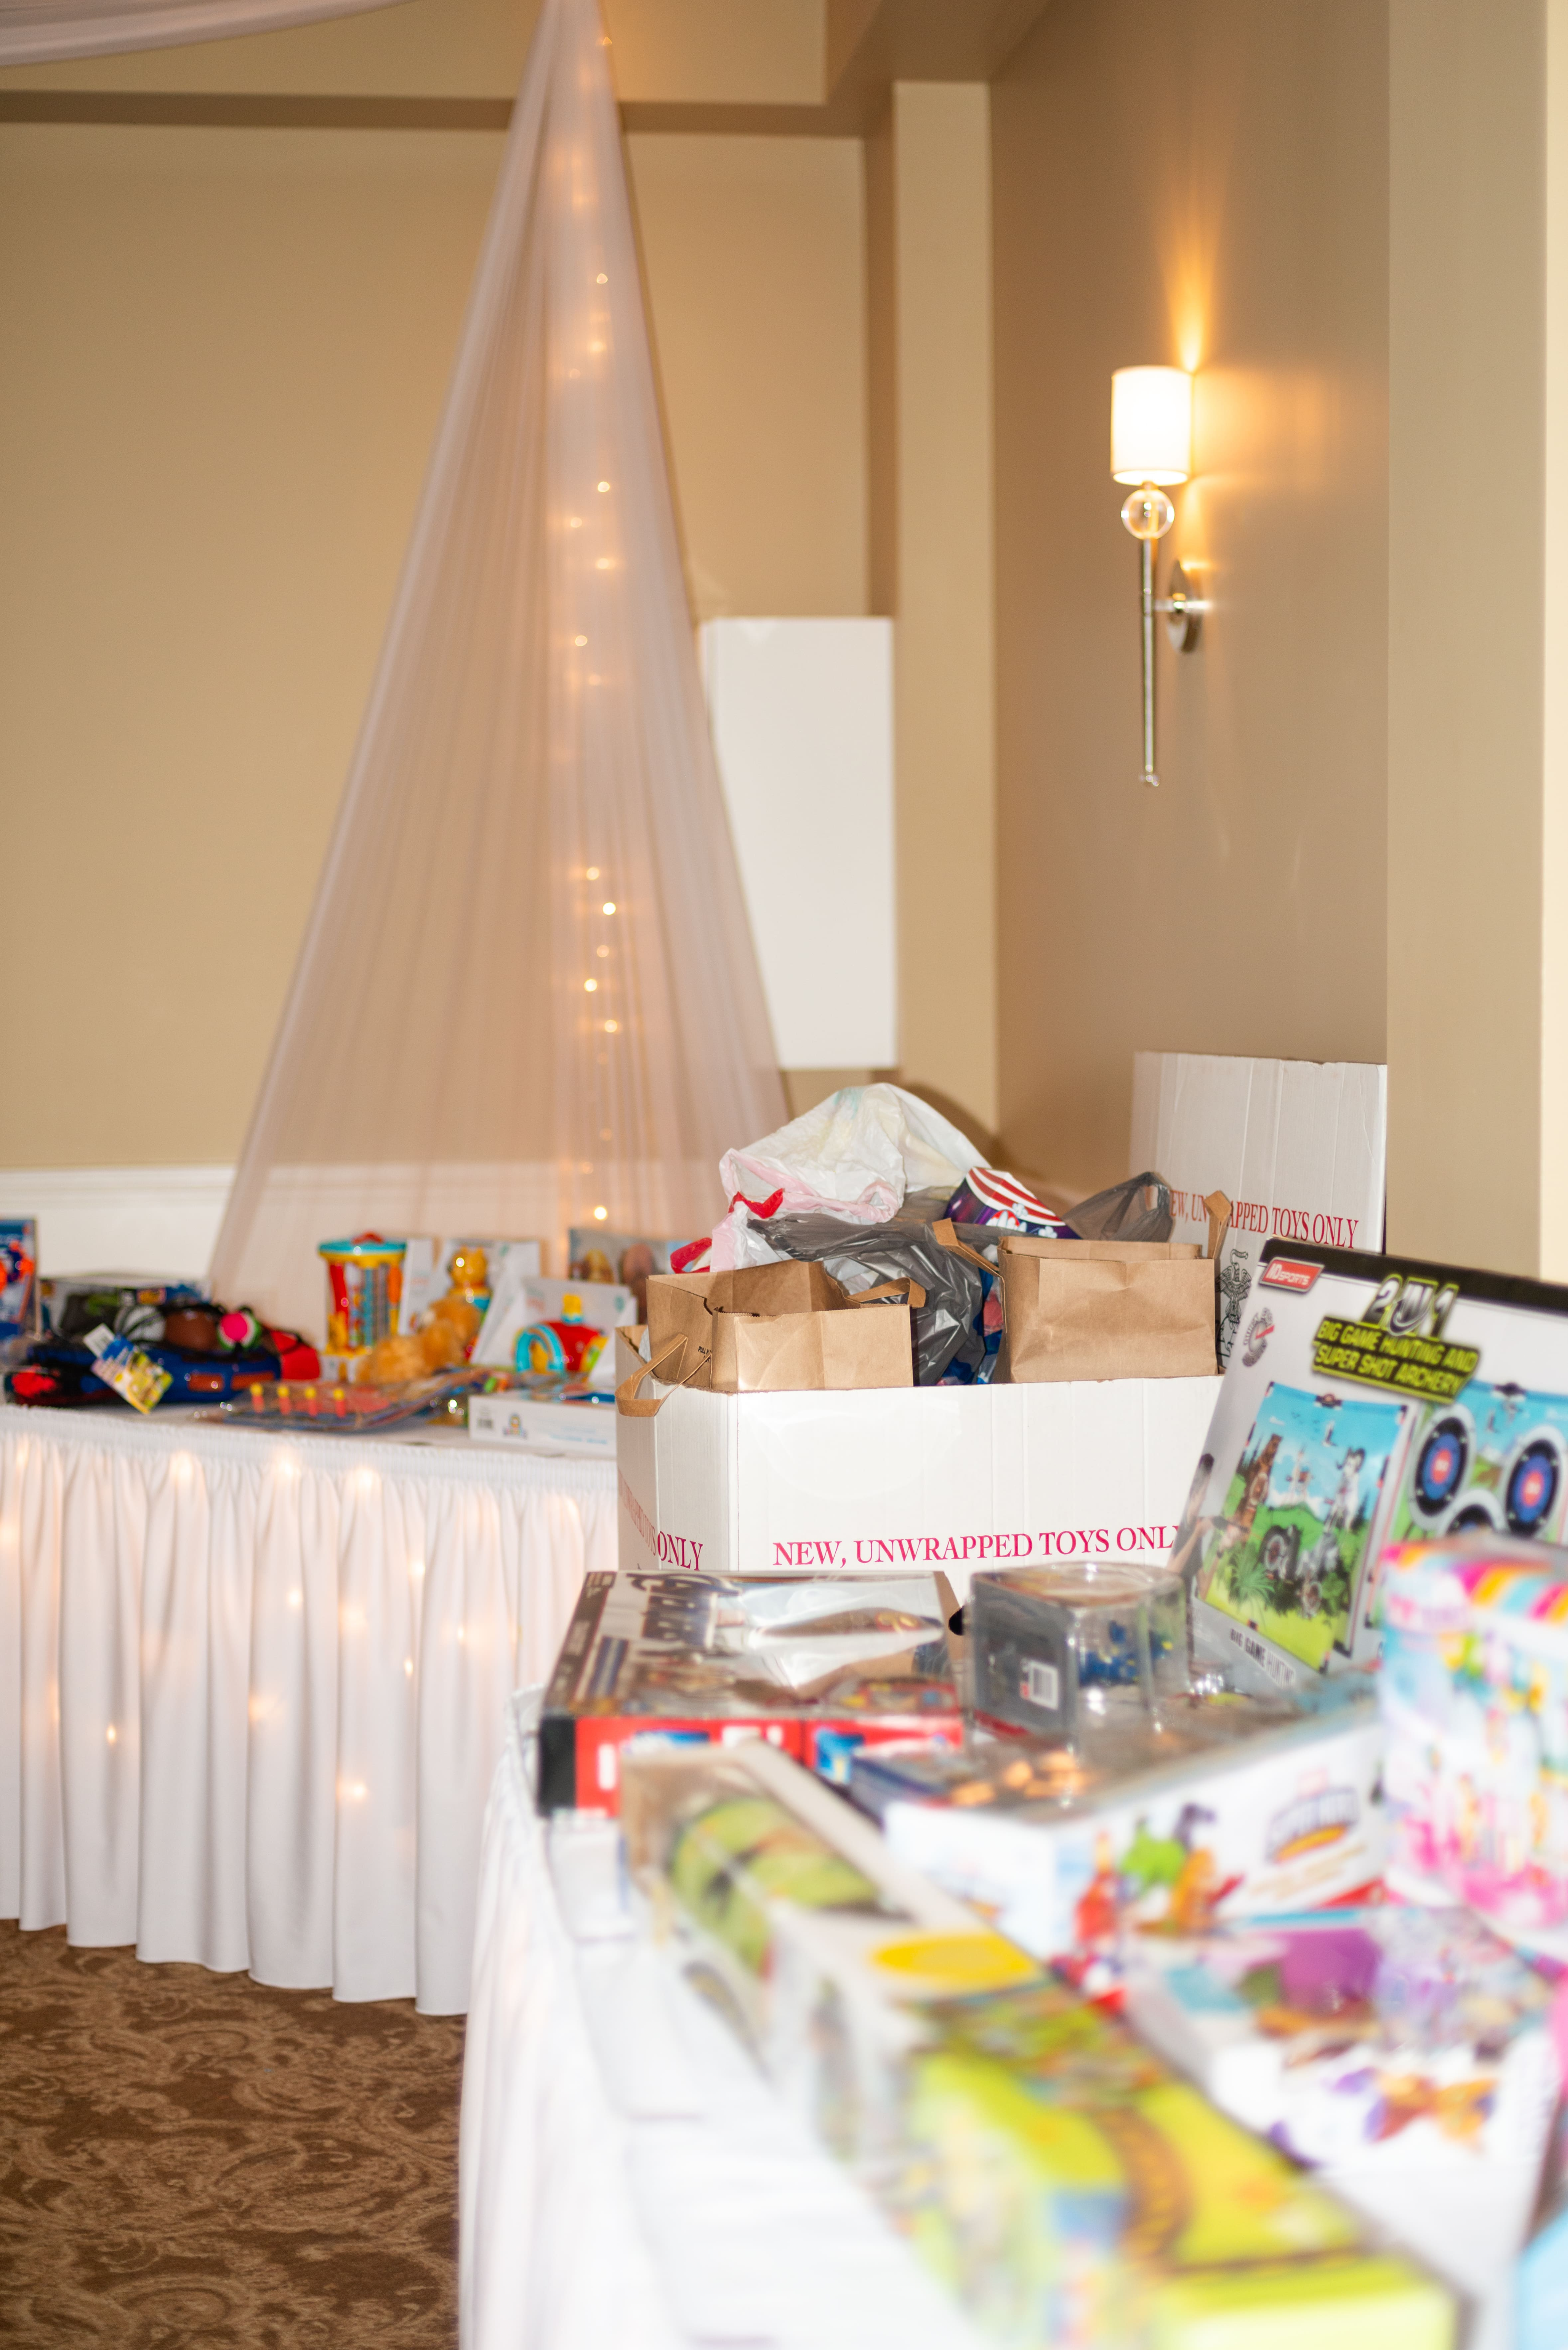 2019-12-December/EventPhotos/7th-Annual-Toys-for-Tots-Holiday-Party/-2 (Image - 2)